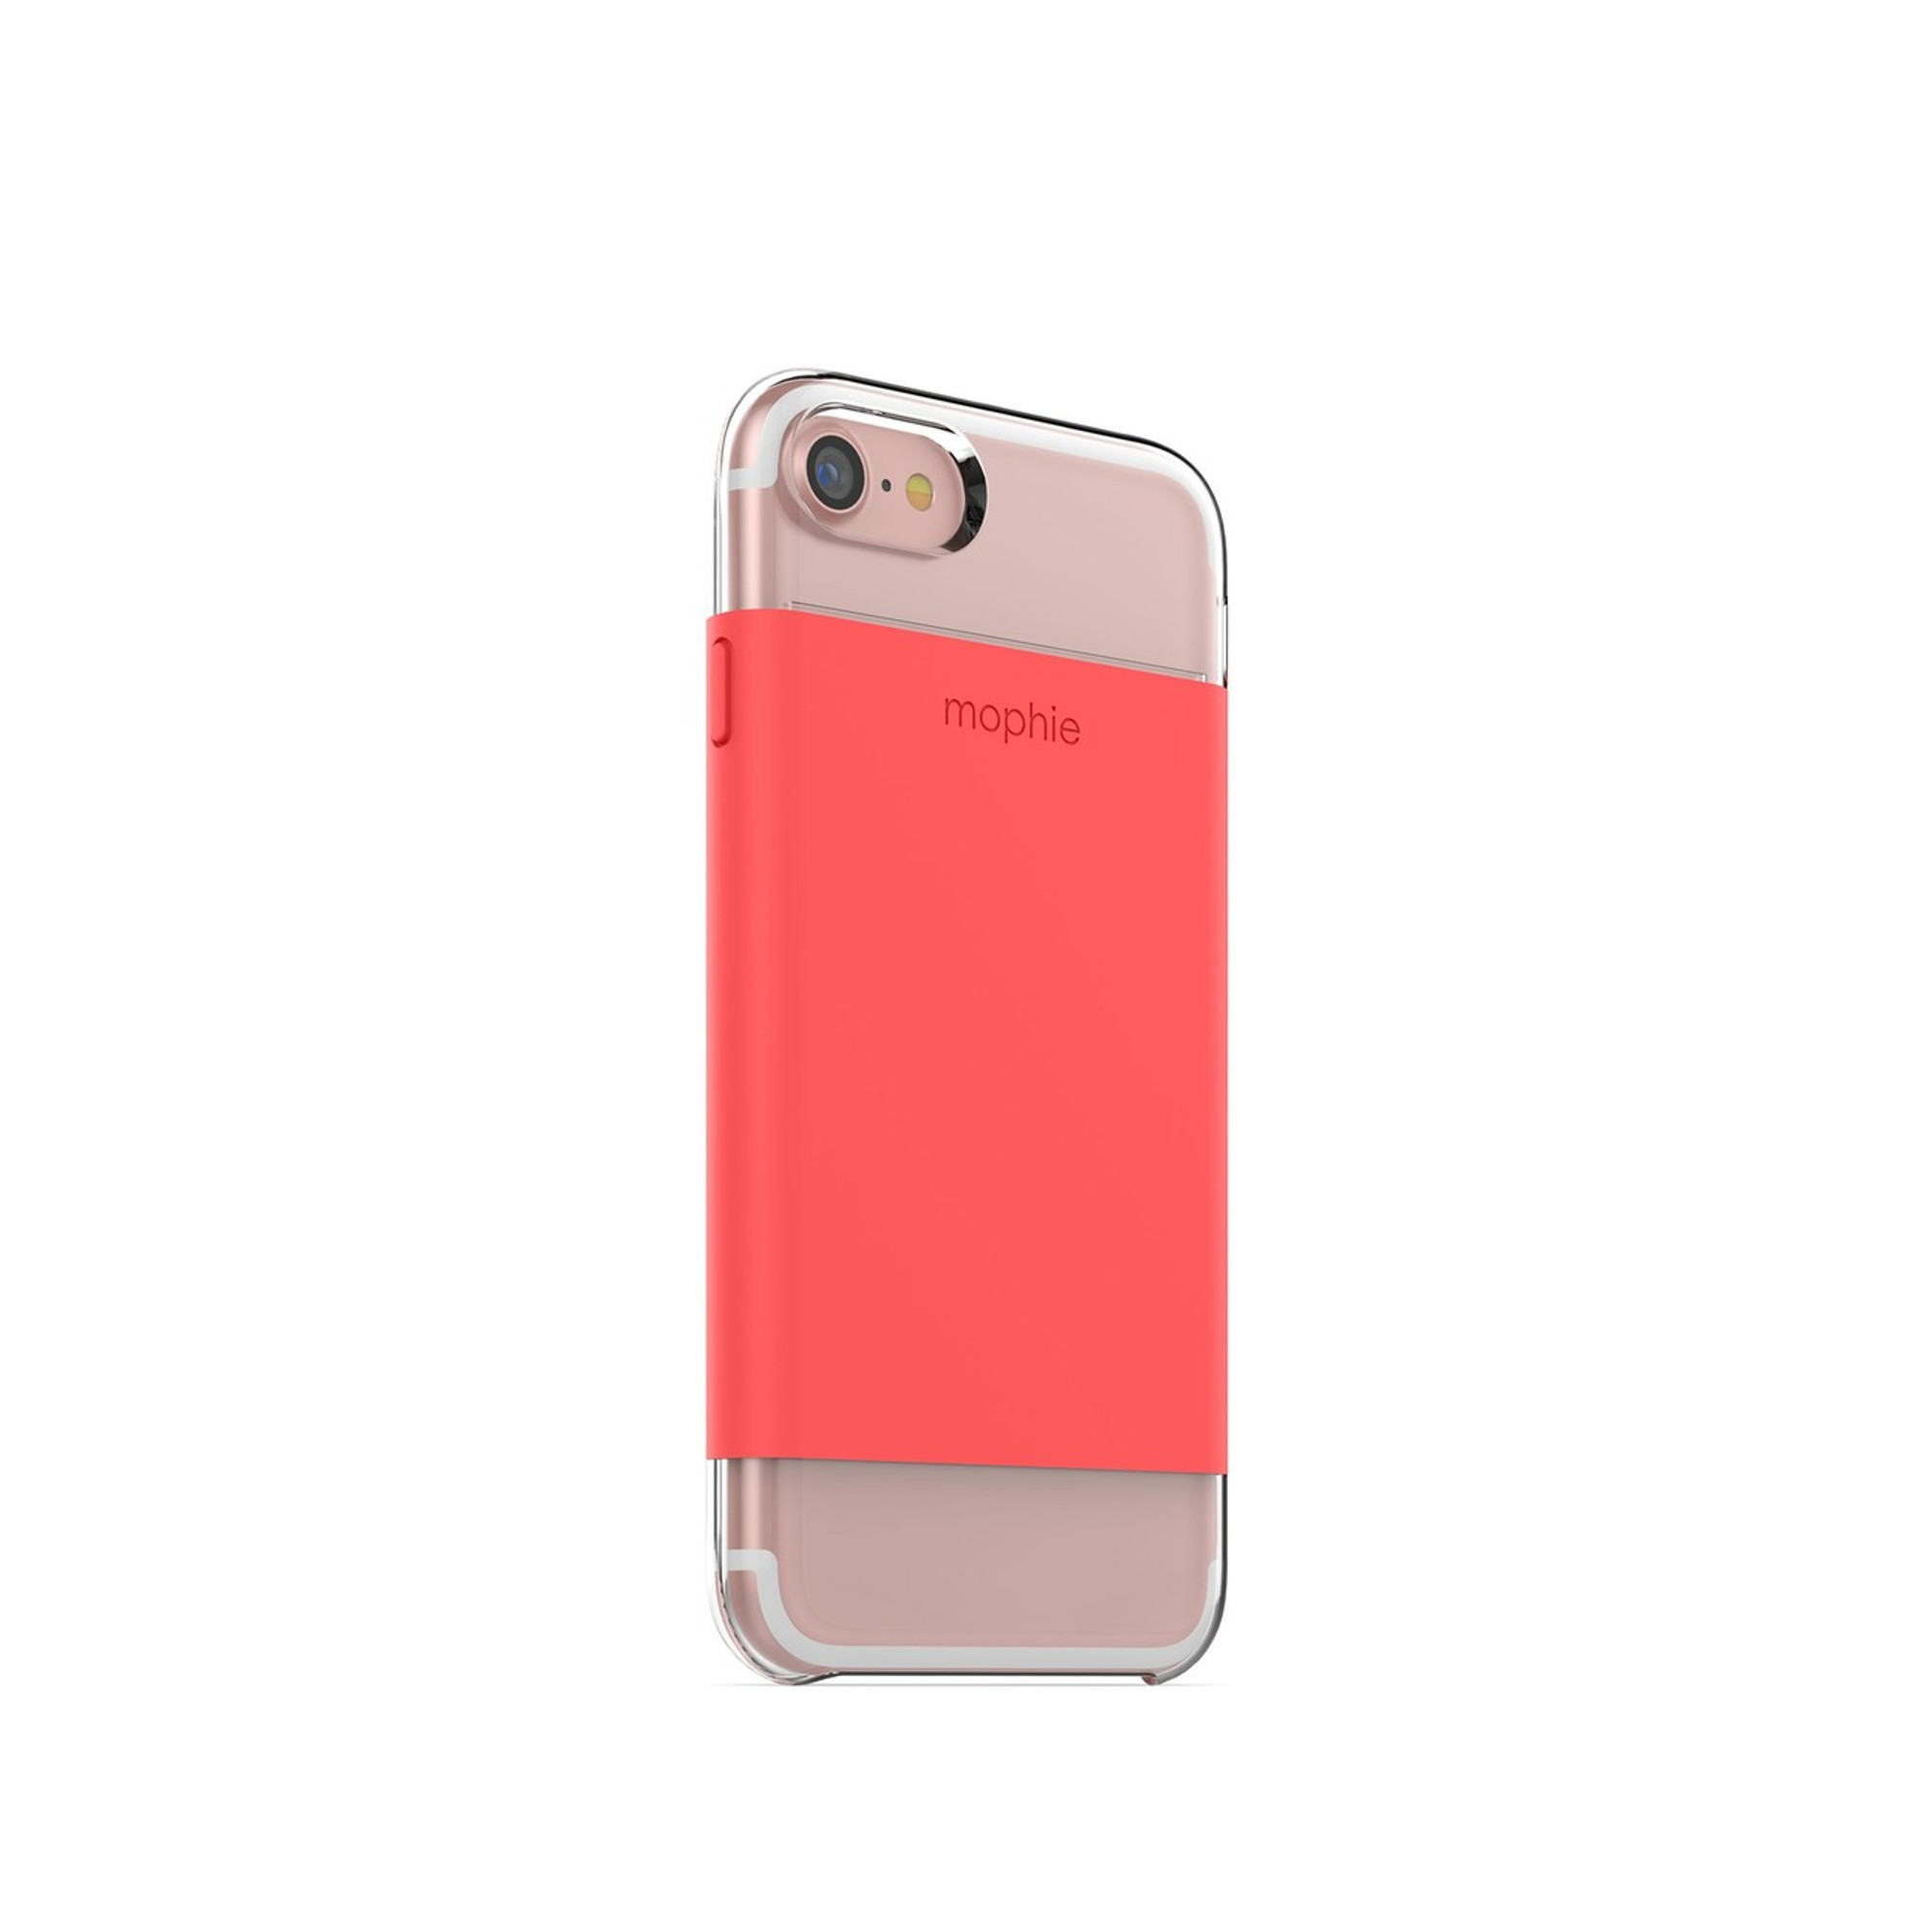 reputable site 62876 72dfa mophie Hold Force Base Case for iPhone 7 - Coral